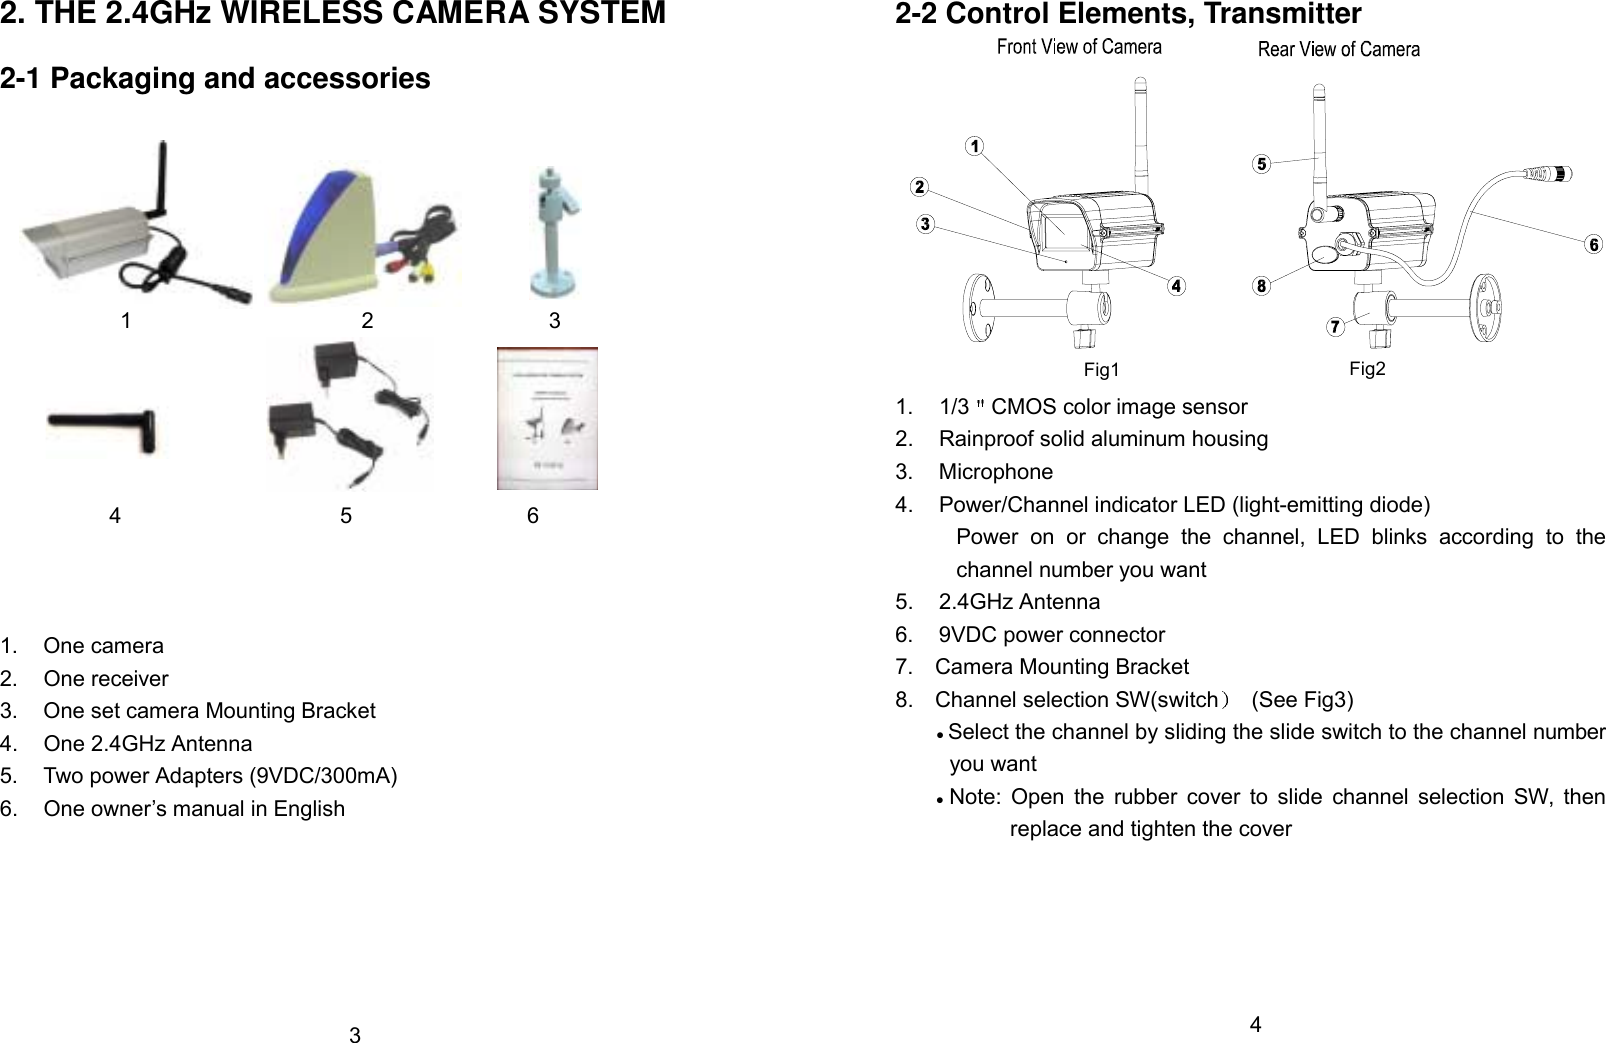 Jesmay Electronics Co Jm2176t 24ghz Wireless Camera System User Diagram The 2 1 Packaging And Accessories